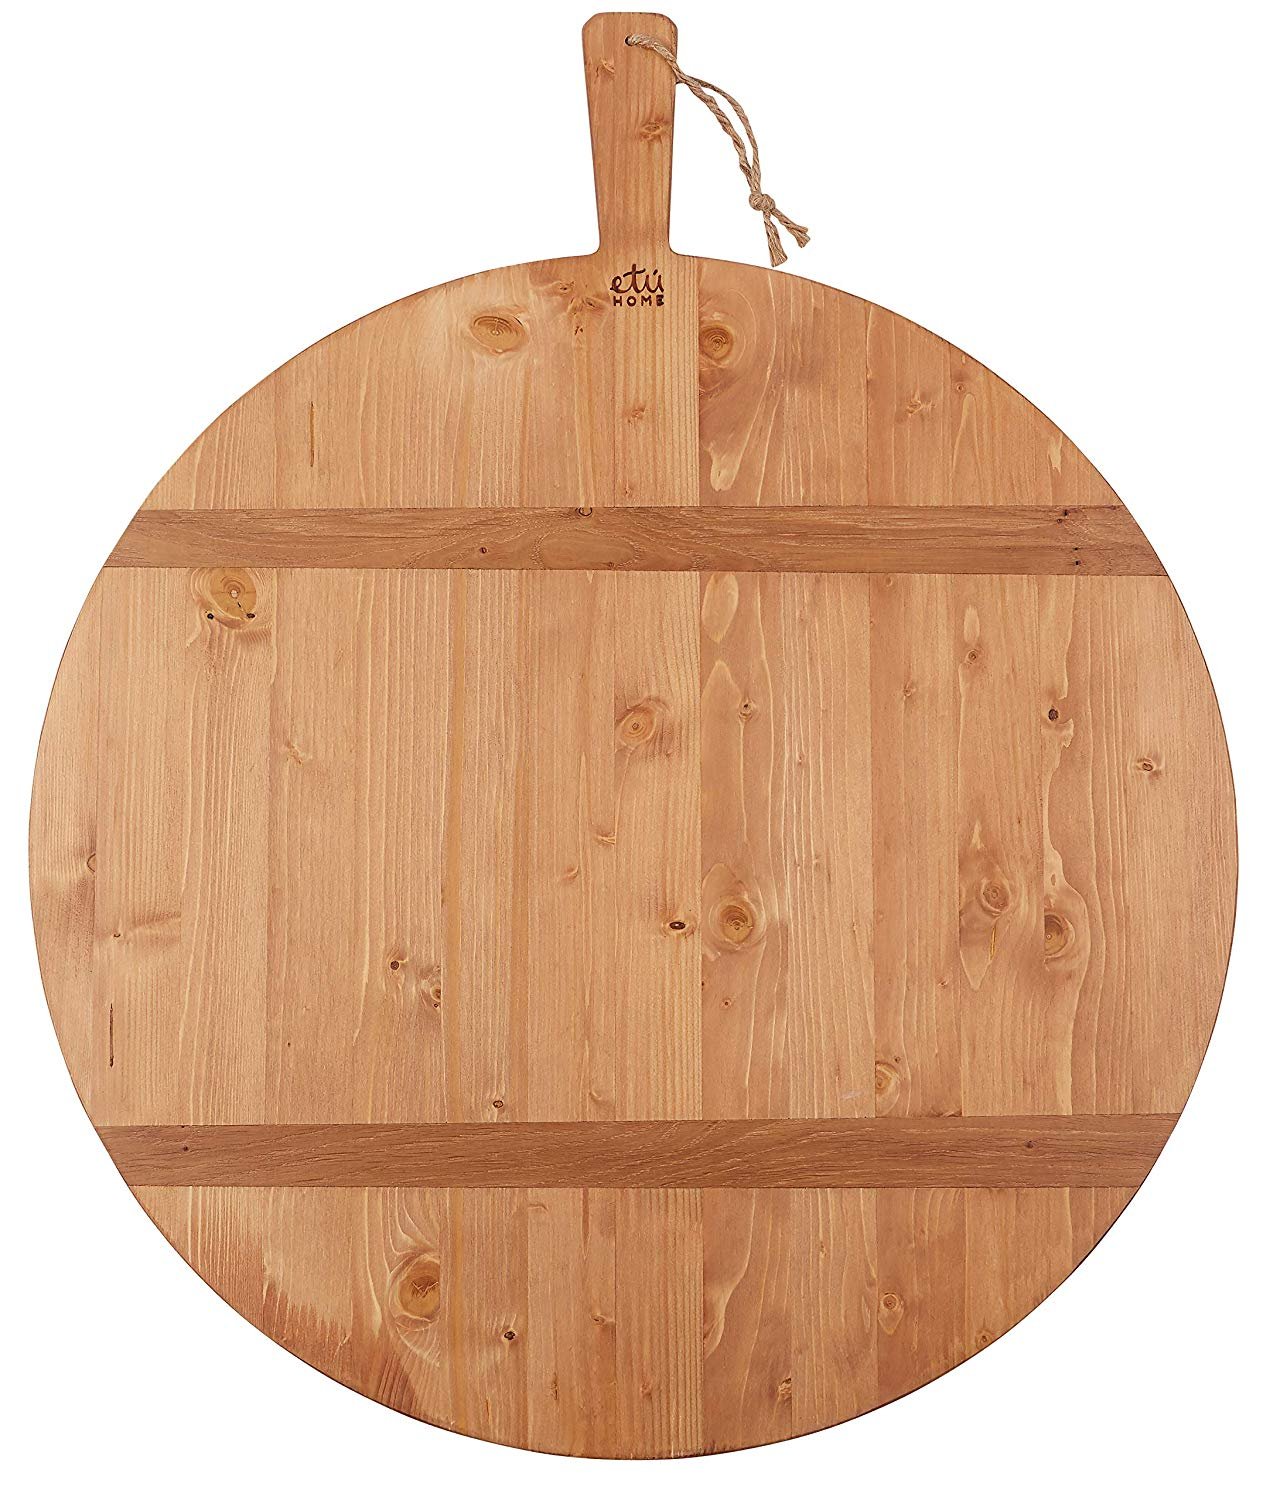 etúHOME Reclaimed Pine Round Charcuterie Board